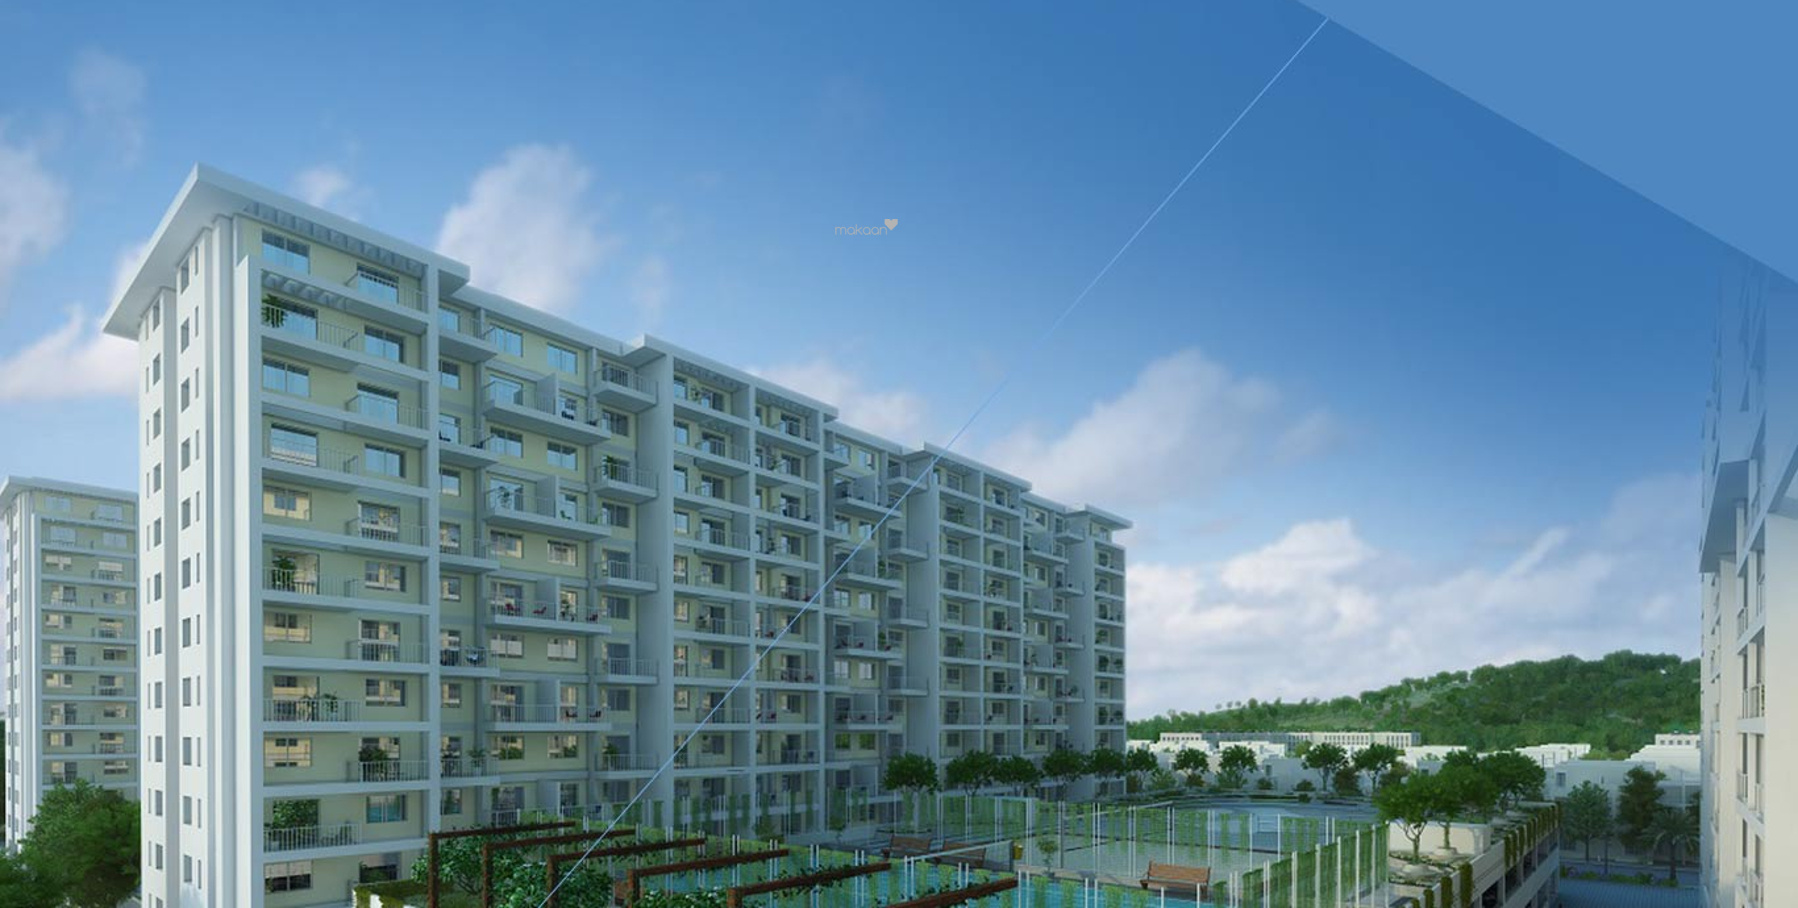 1185 sq ft 2BHK 2BHK+2T (1,185 sq ft) Property By Proptiger In IVY Apartments, Wagholi